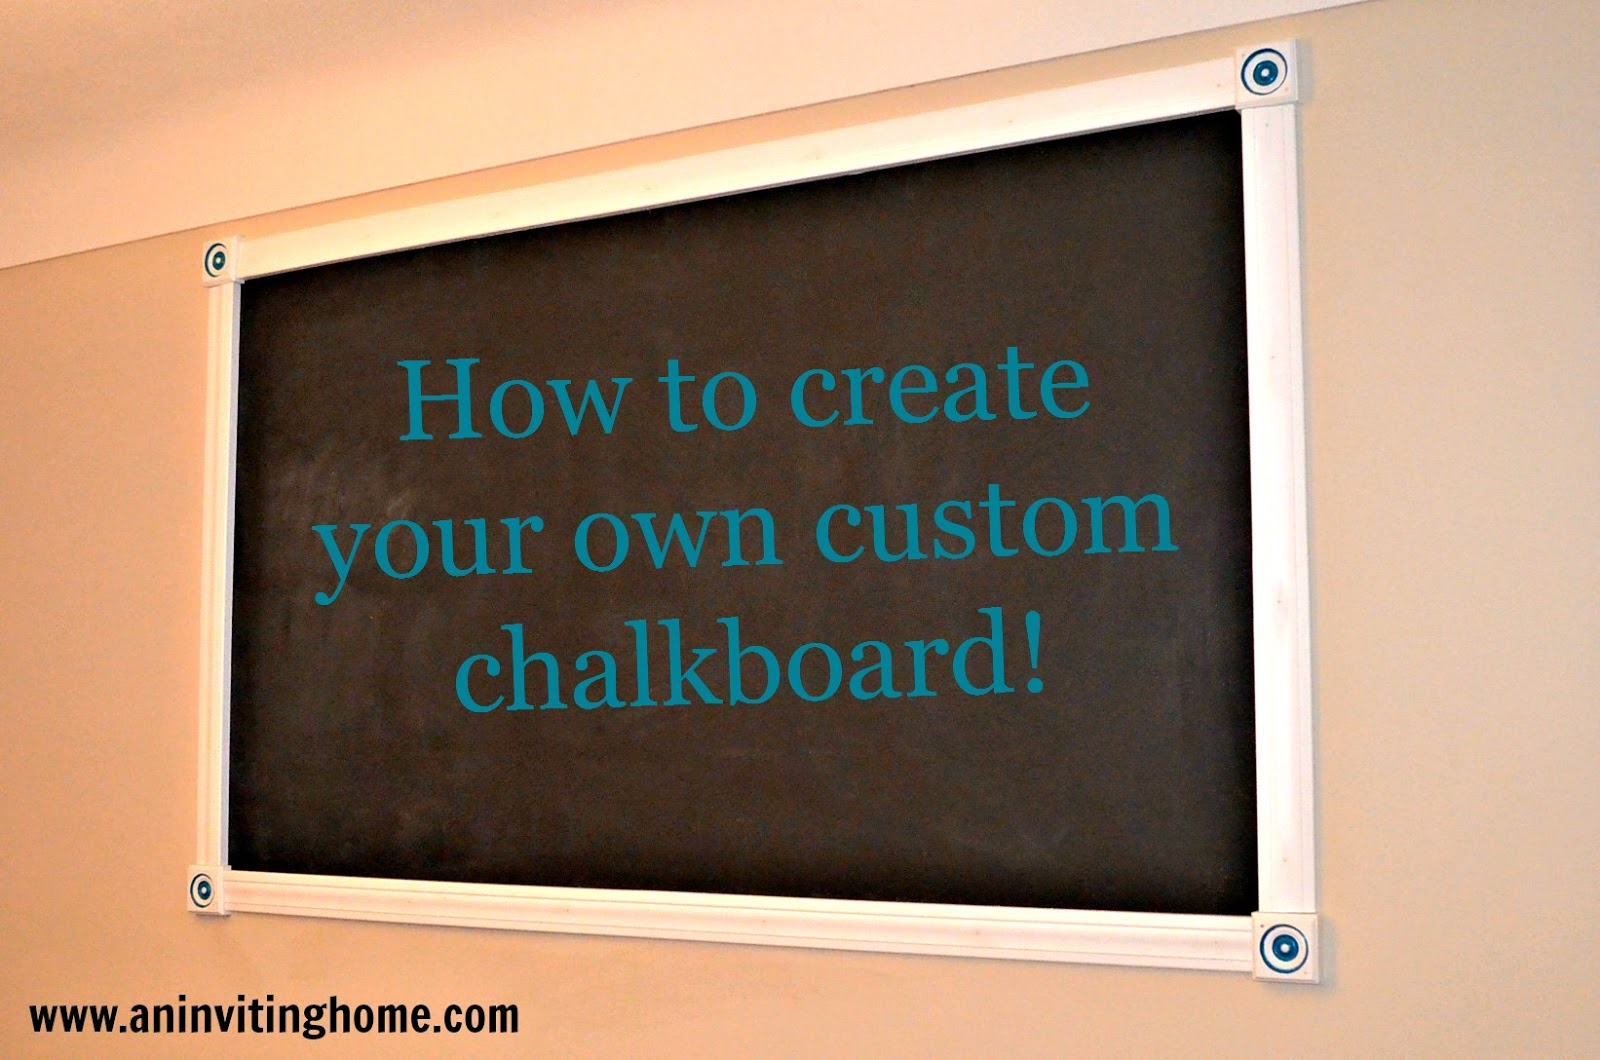 An Inviting Home: How To Create Your Own Custom Chalkboard!